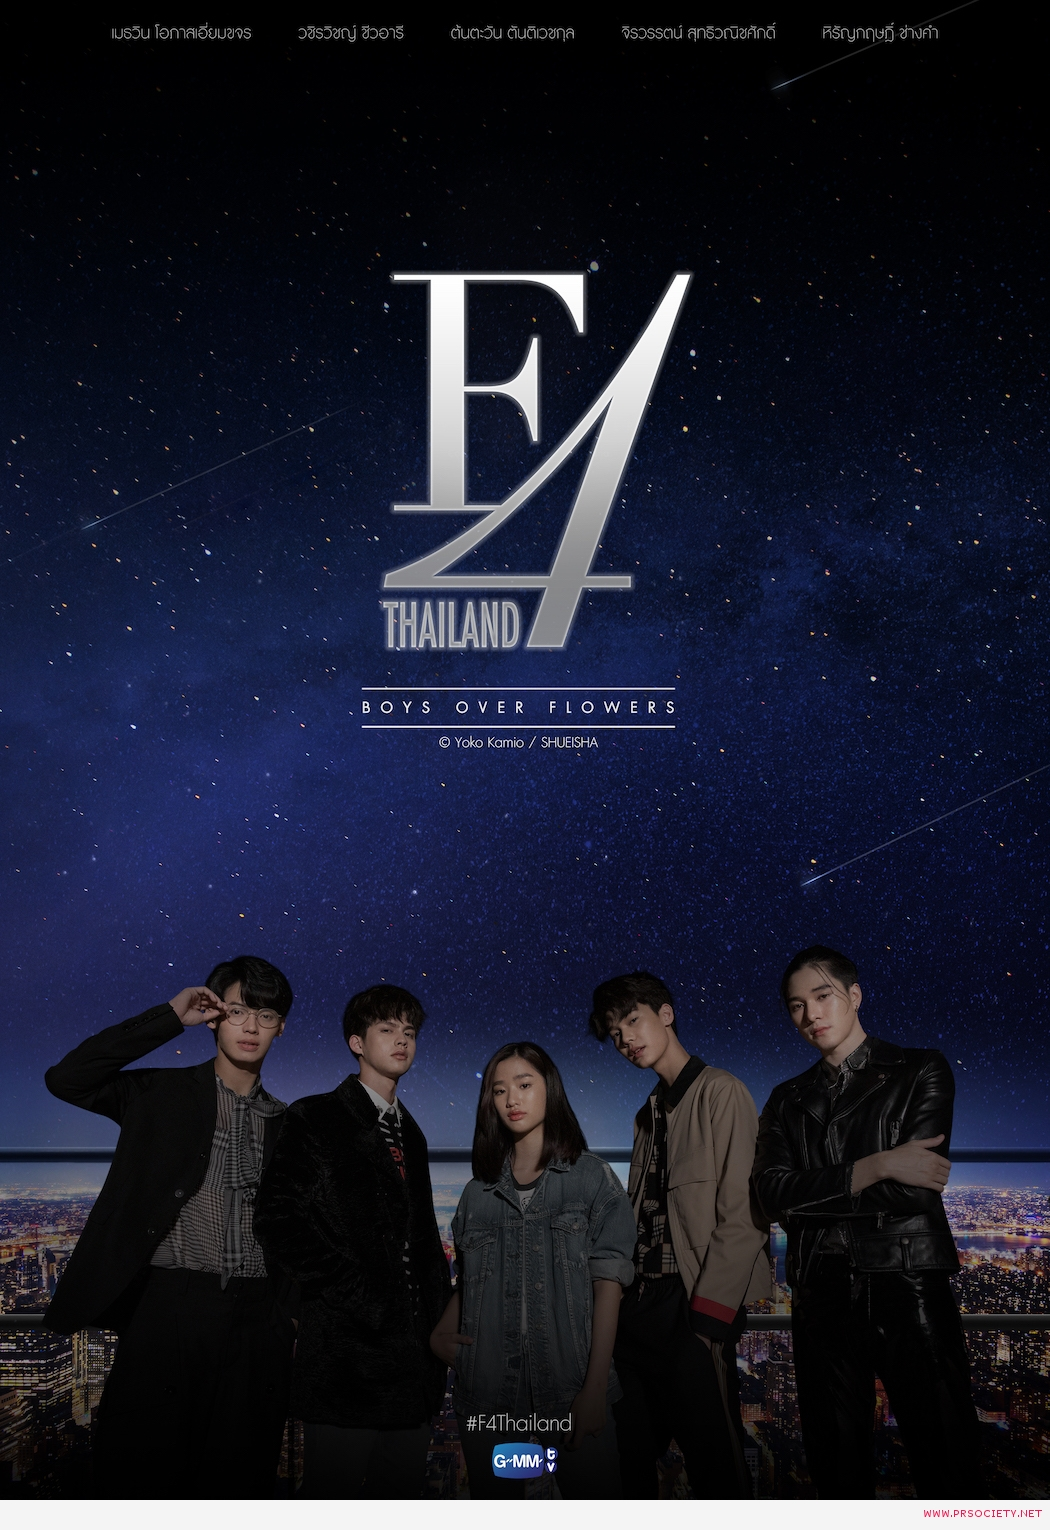 Poster_F4 Thailand